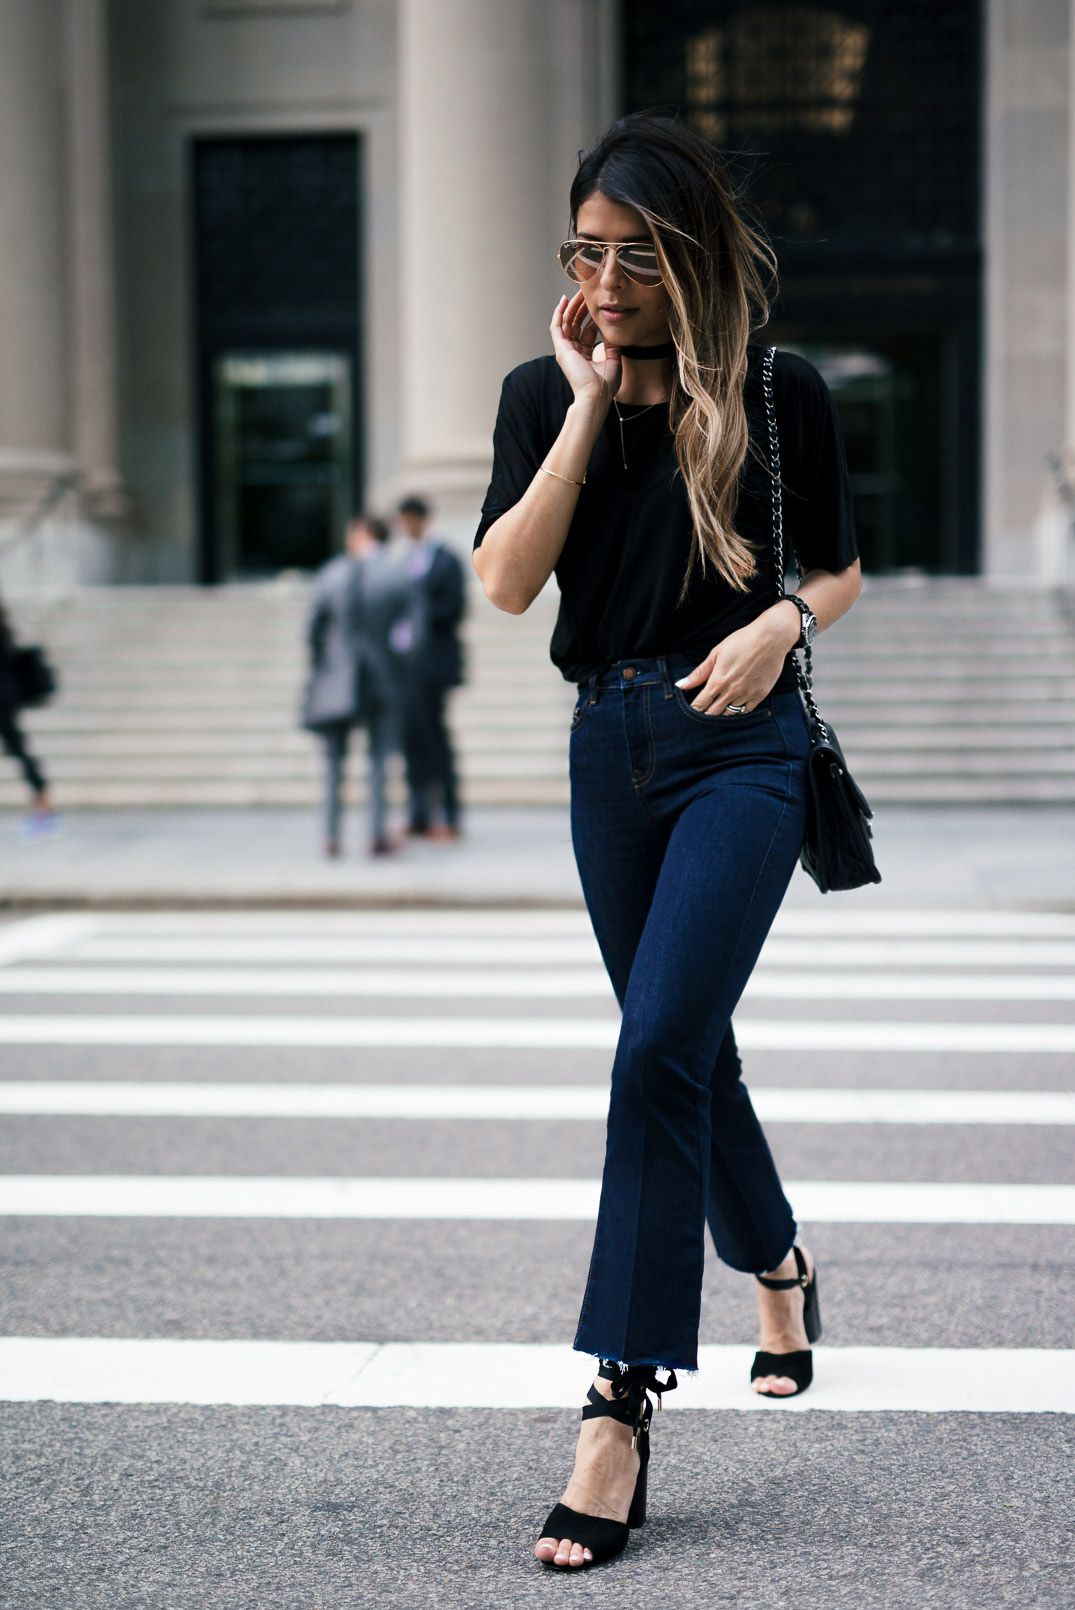 Kick Flare Jeans with strap heels